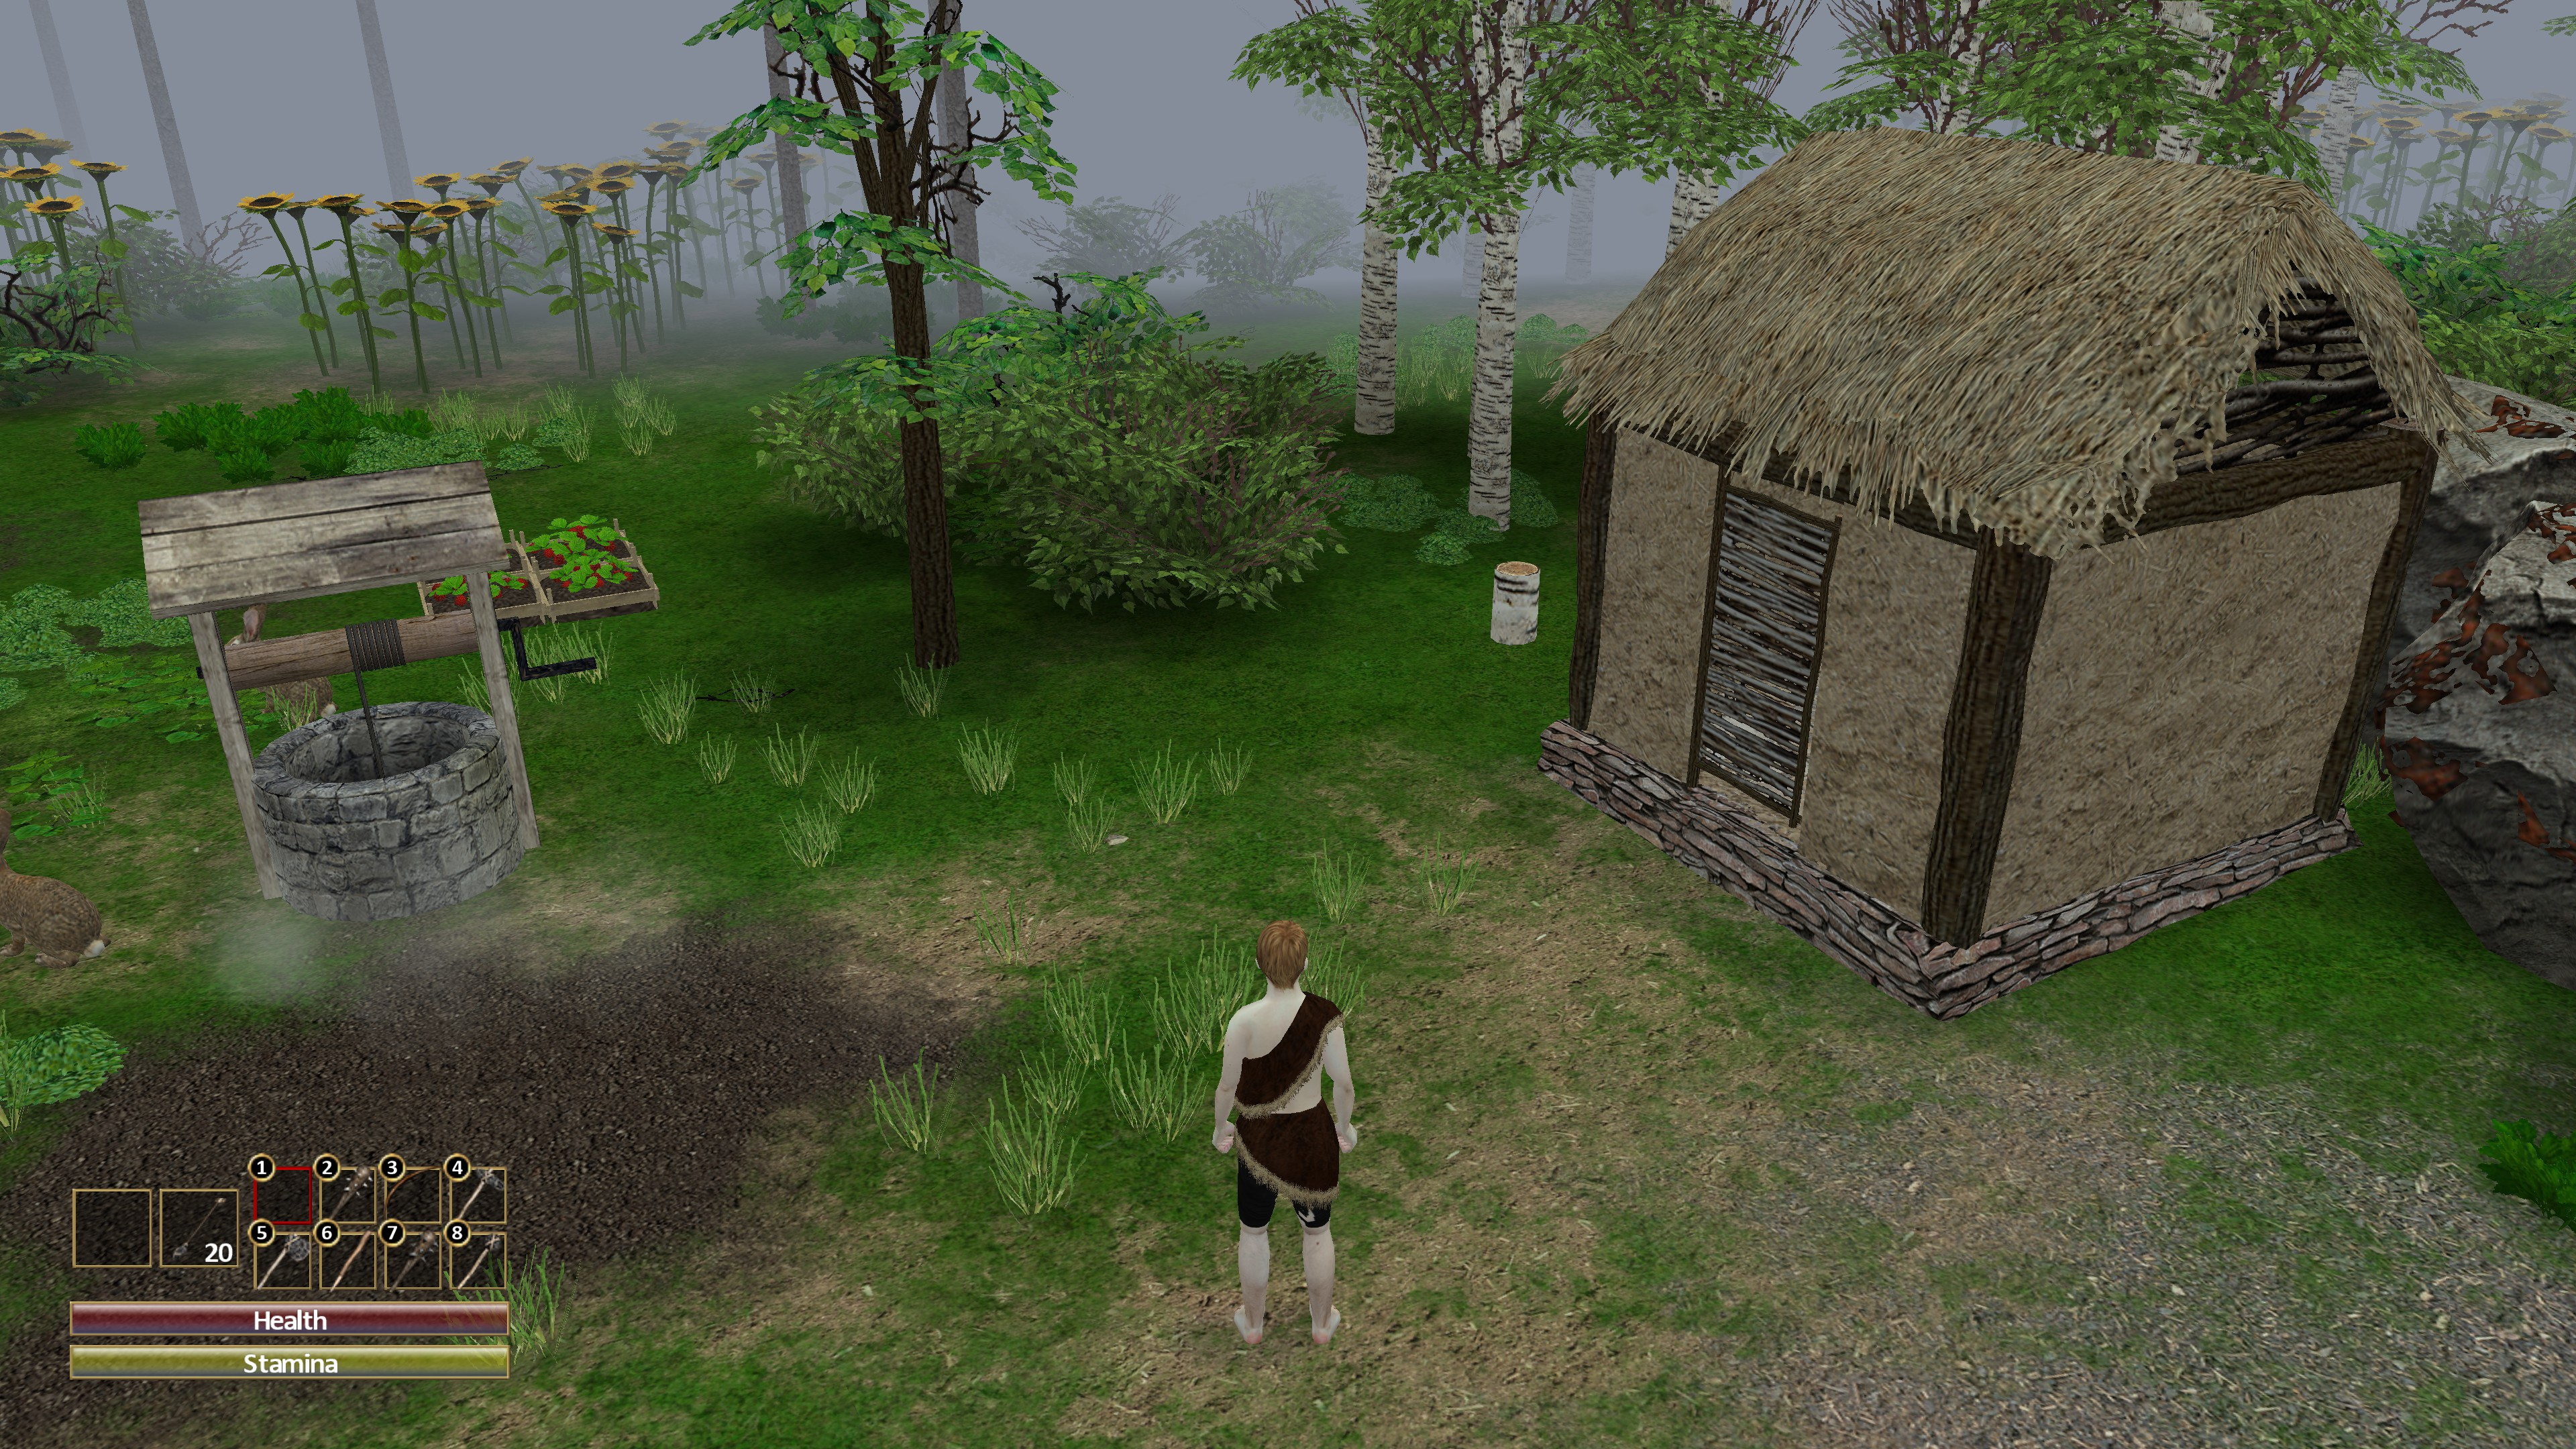 Character stands in front of house, well, and farm while surrounded by trees